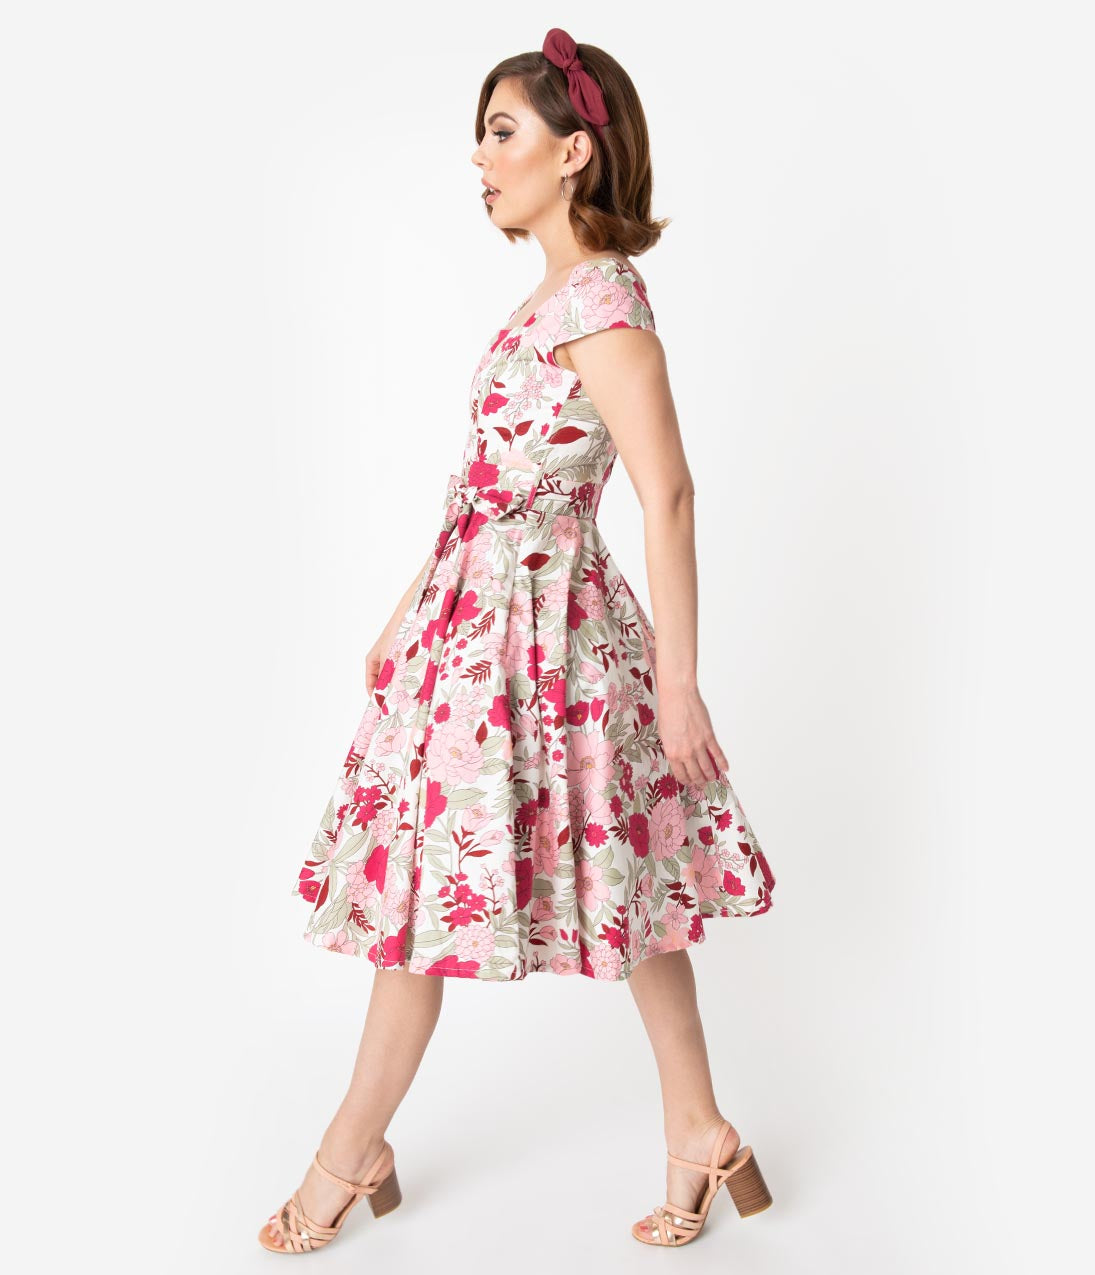 50 Vintage Inspired Clothing Stores Retro Style White  Pink Floral Print Cap Sleeve Anna Swing Dress $68.00 AT vintagedancer.com